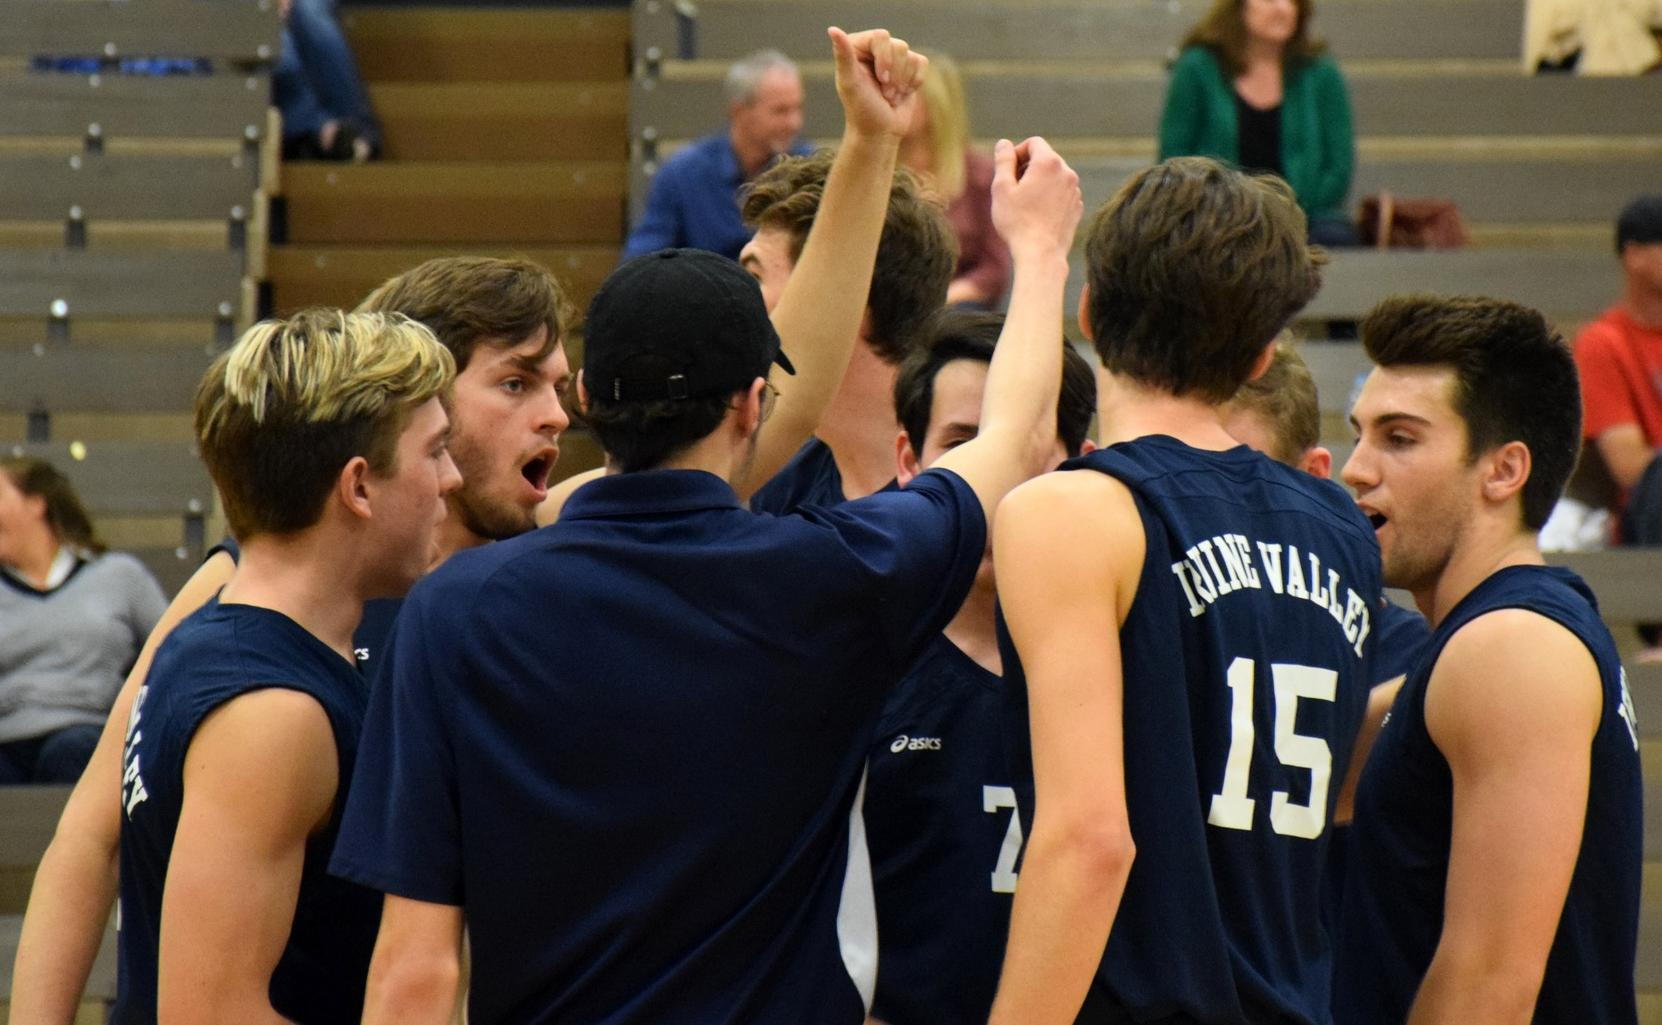 Men's volleyball team at the top of the state poll once again